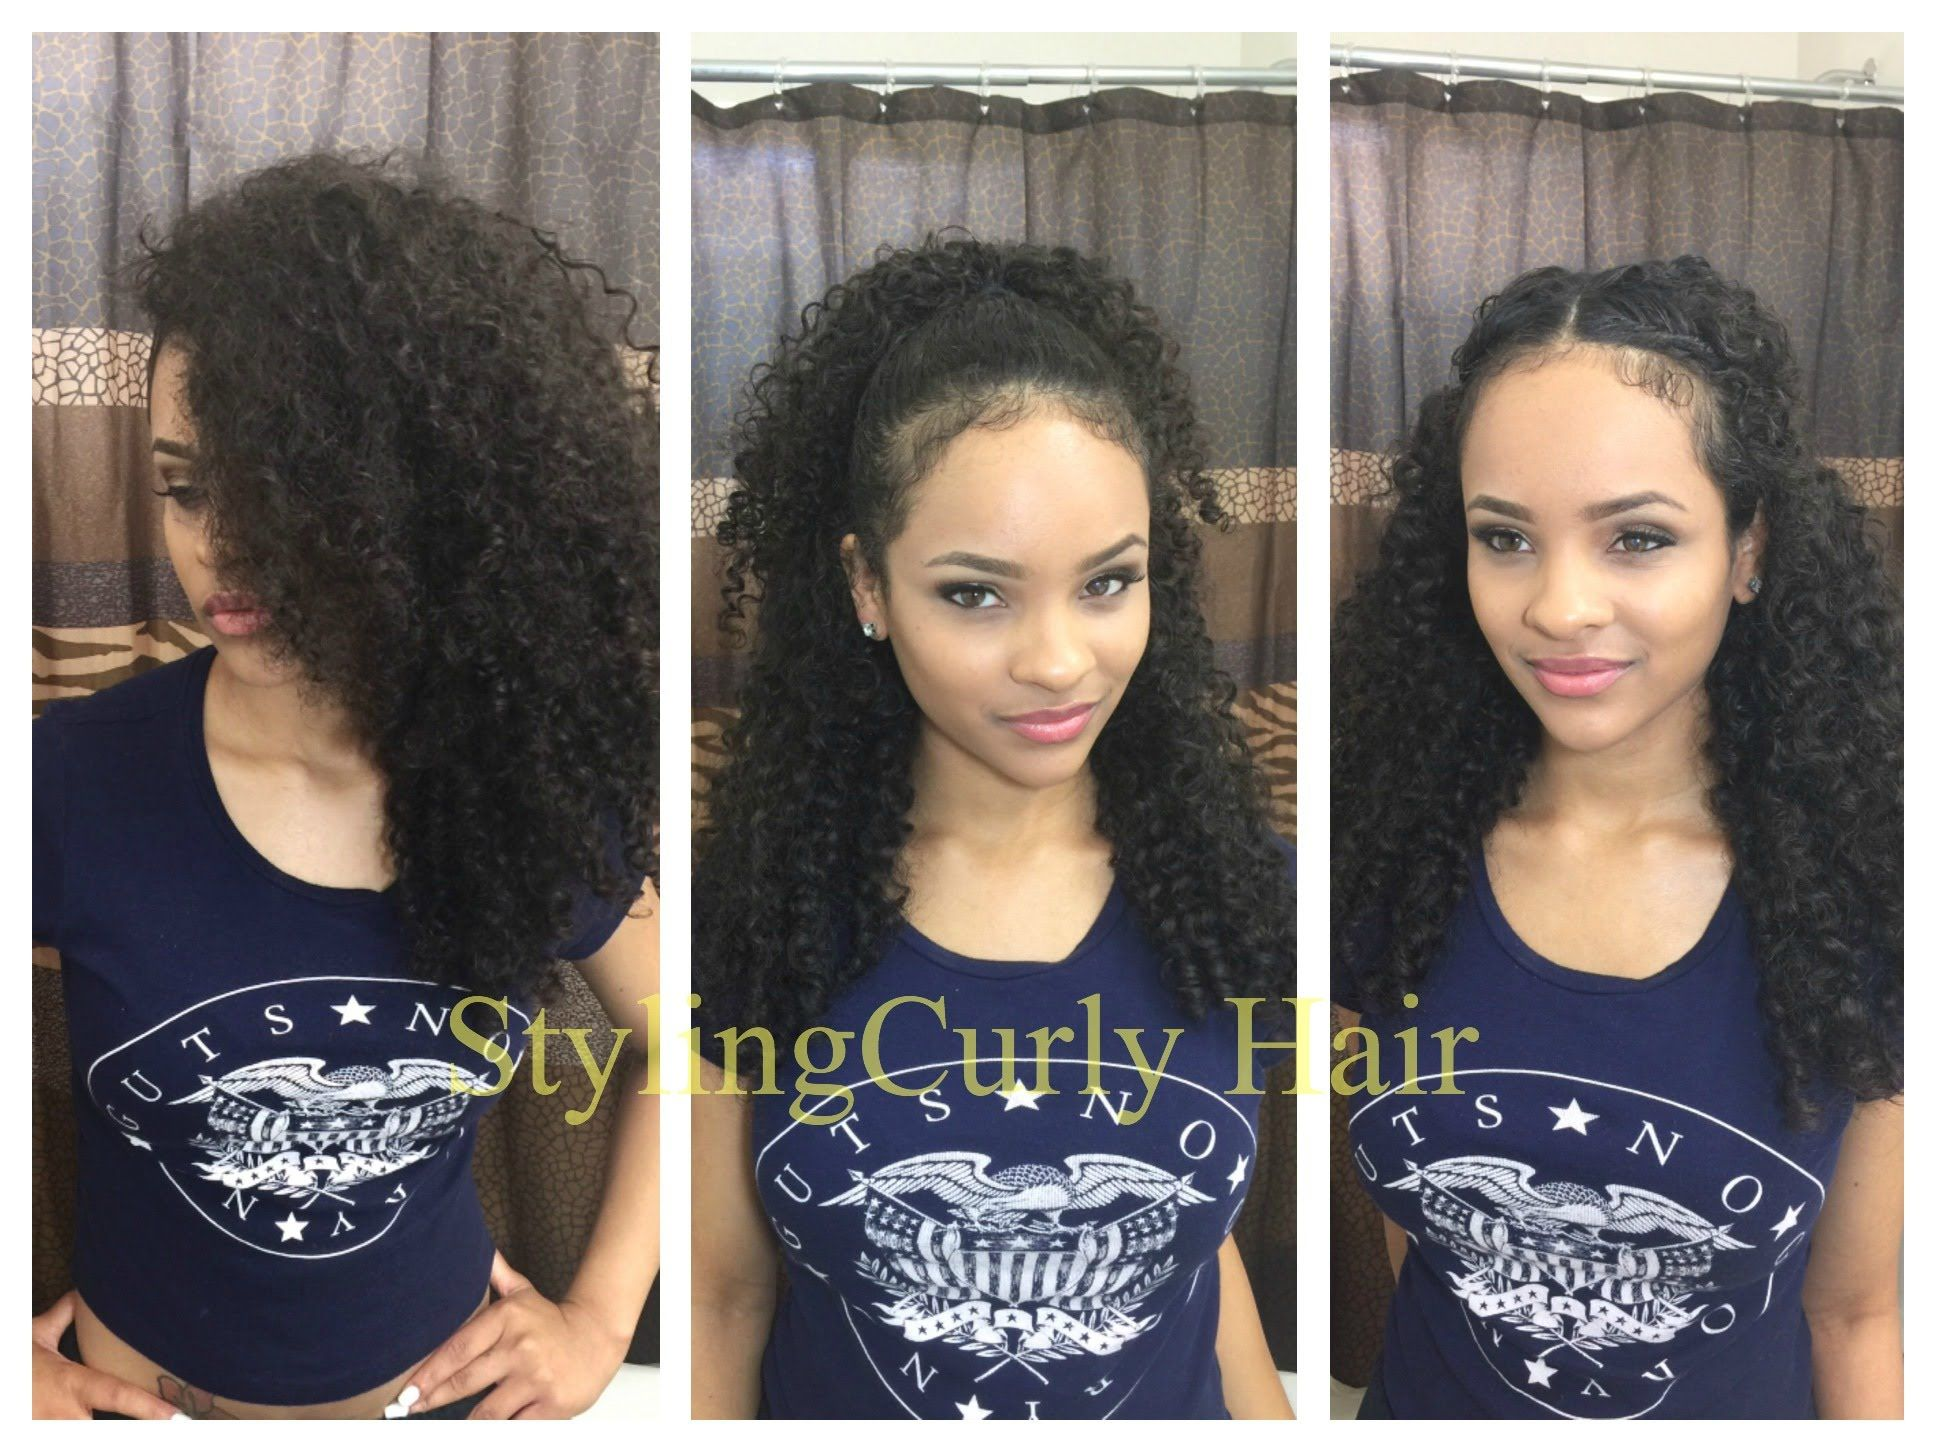 6 Quick And Simple Ways To Style Curly Hair Sayria Jade Amornai Mixed Curly Hair Curly Hair Styles Naturally Natural Curls Hairstyles